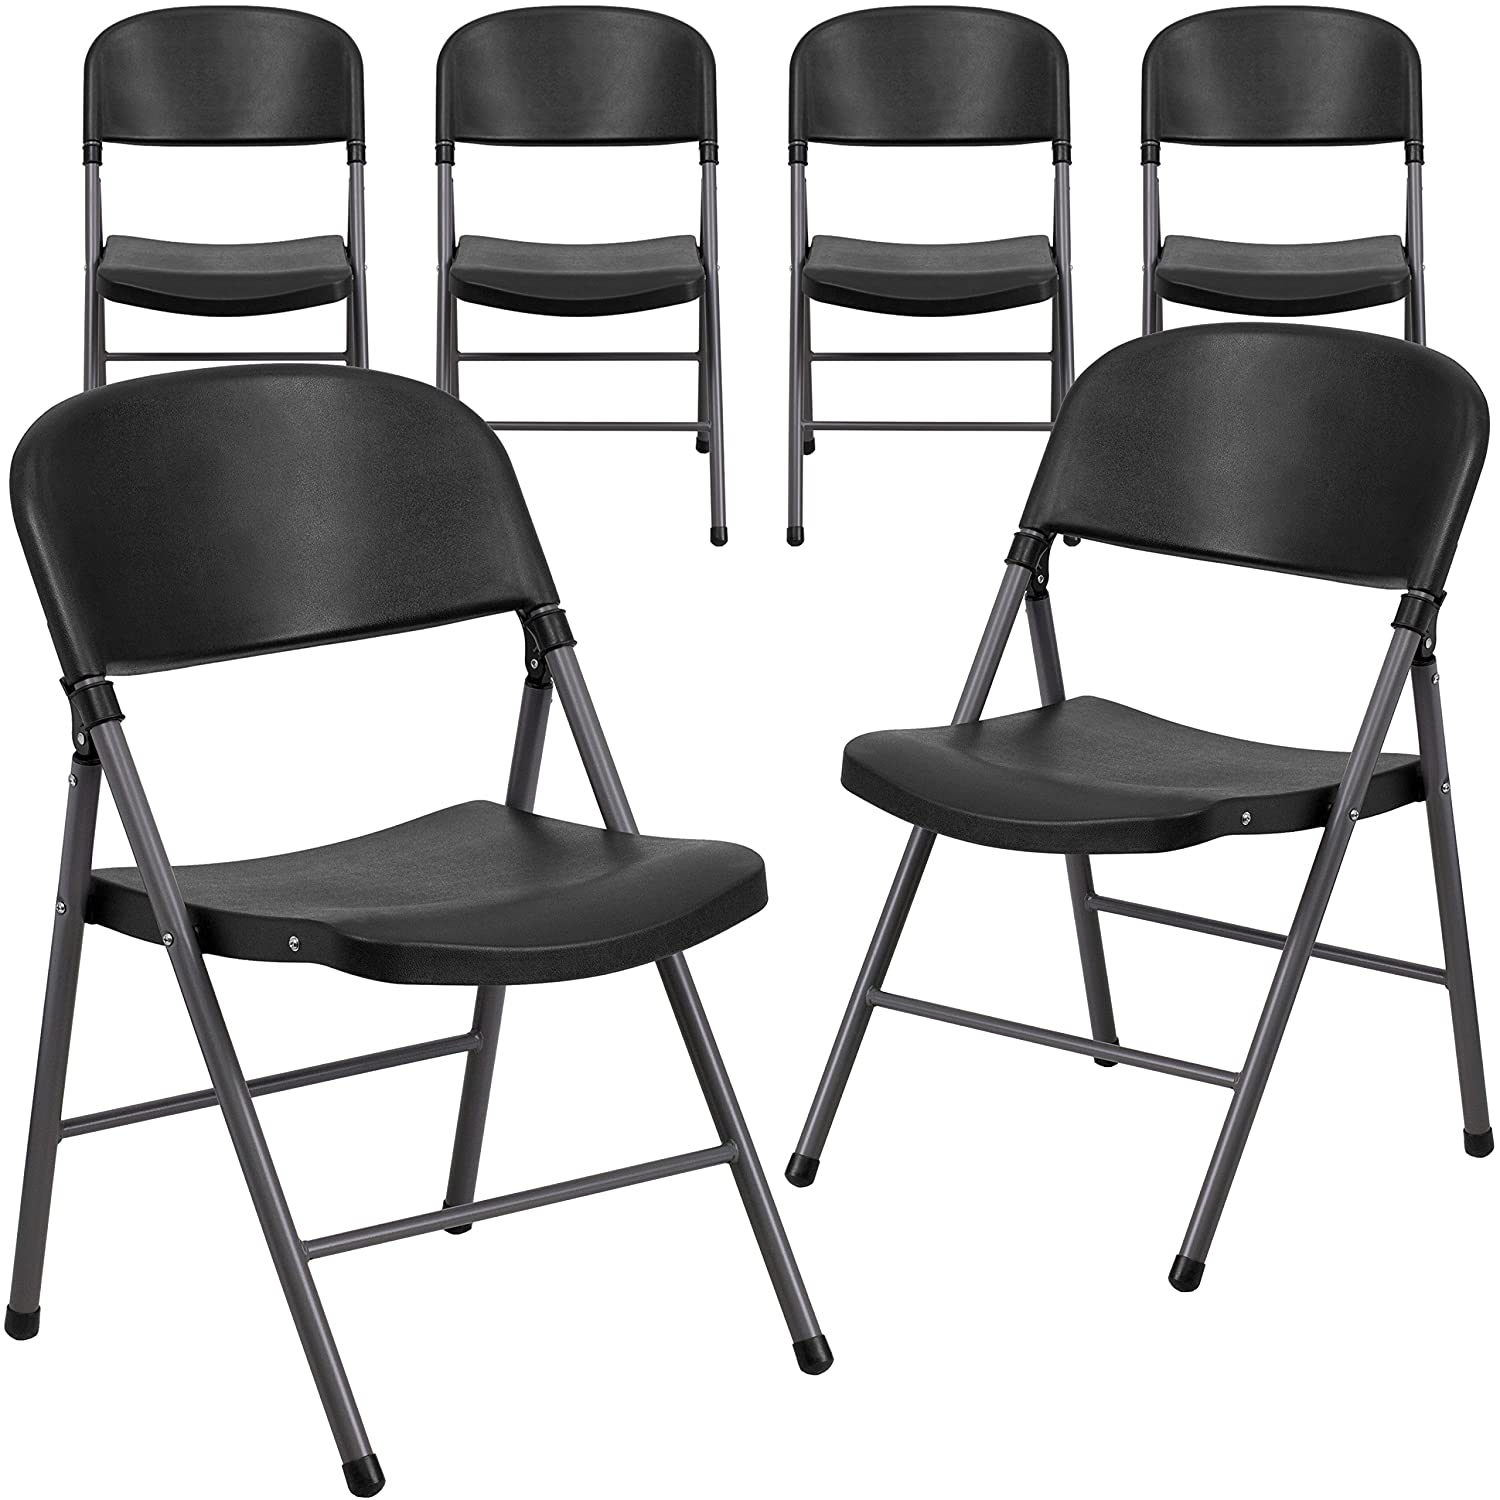 Amazon.com: Flash Furniture 6 Pk. HERCULES Series 330 Lb. Capacity Black  Plastic Folding Chair With Charcoal Frame: Kitchen U0026 Dining